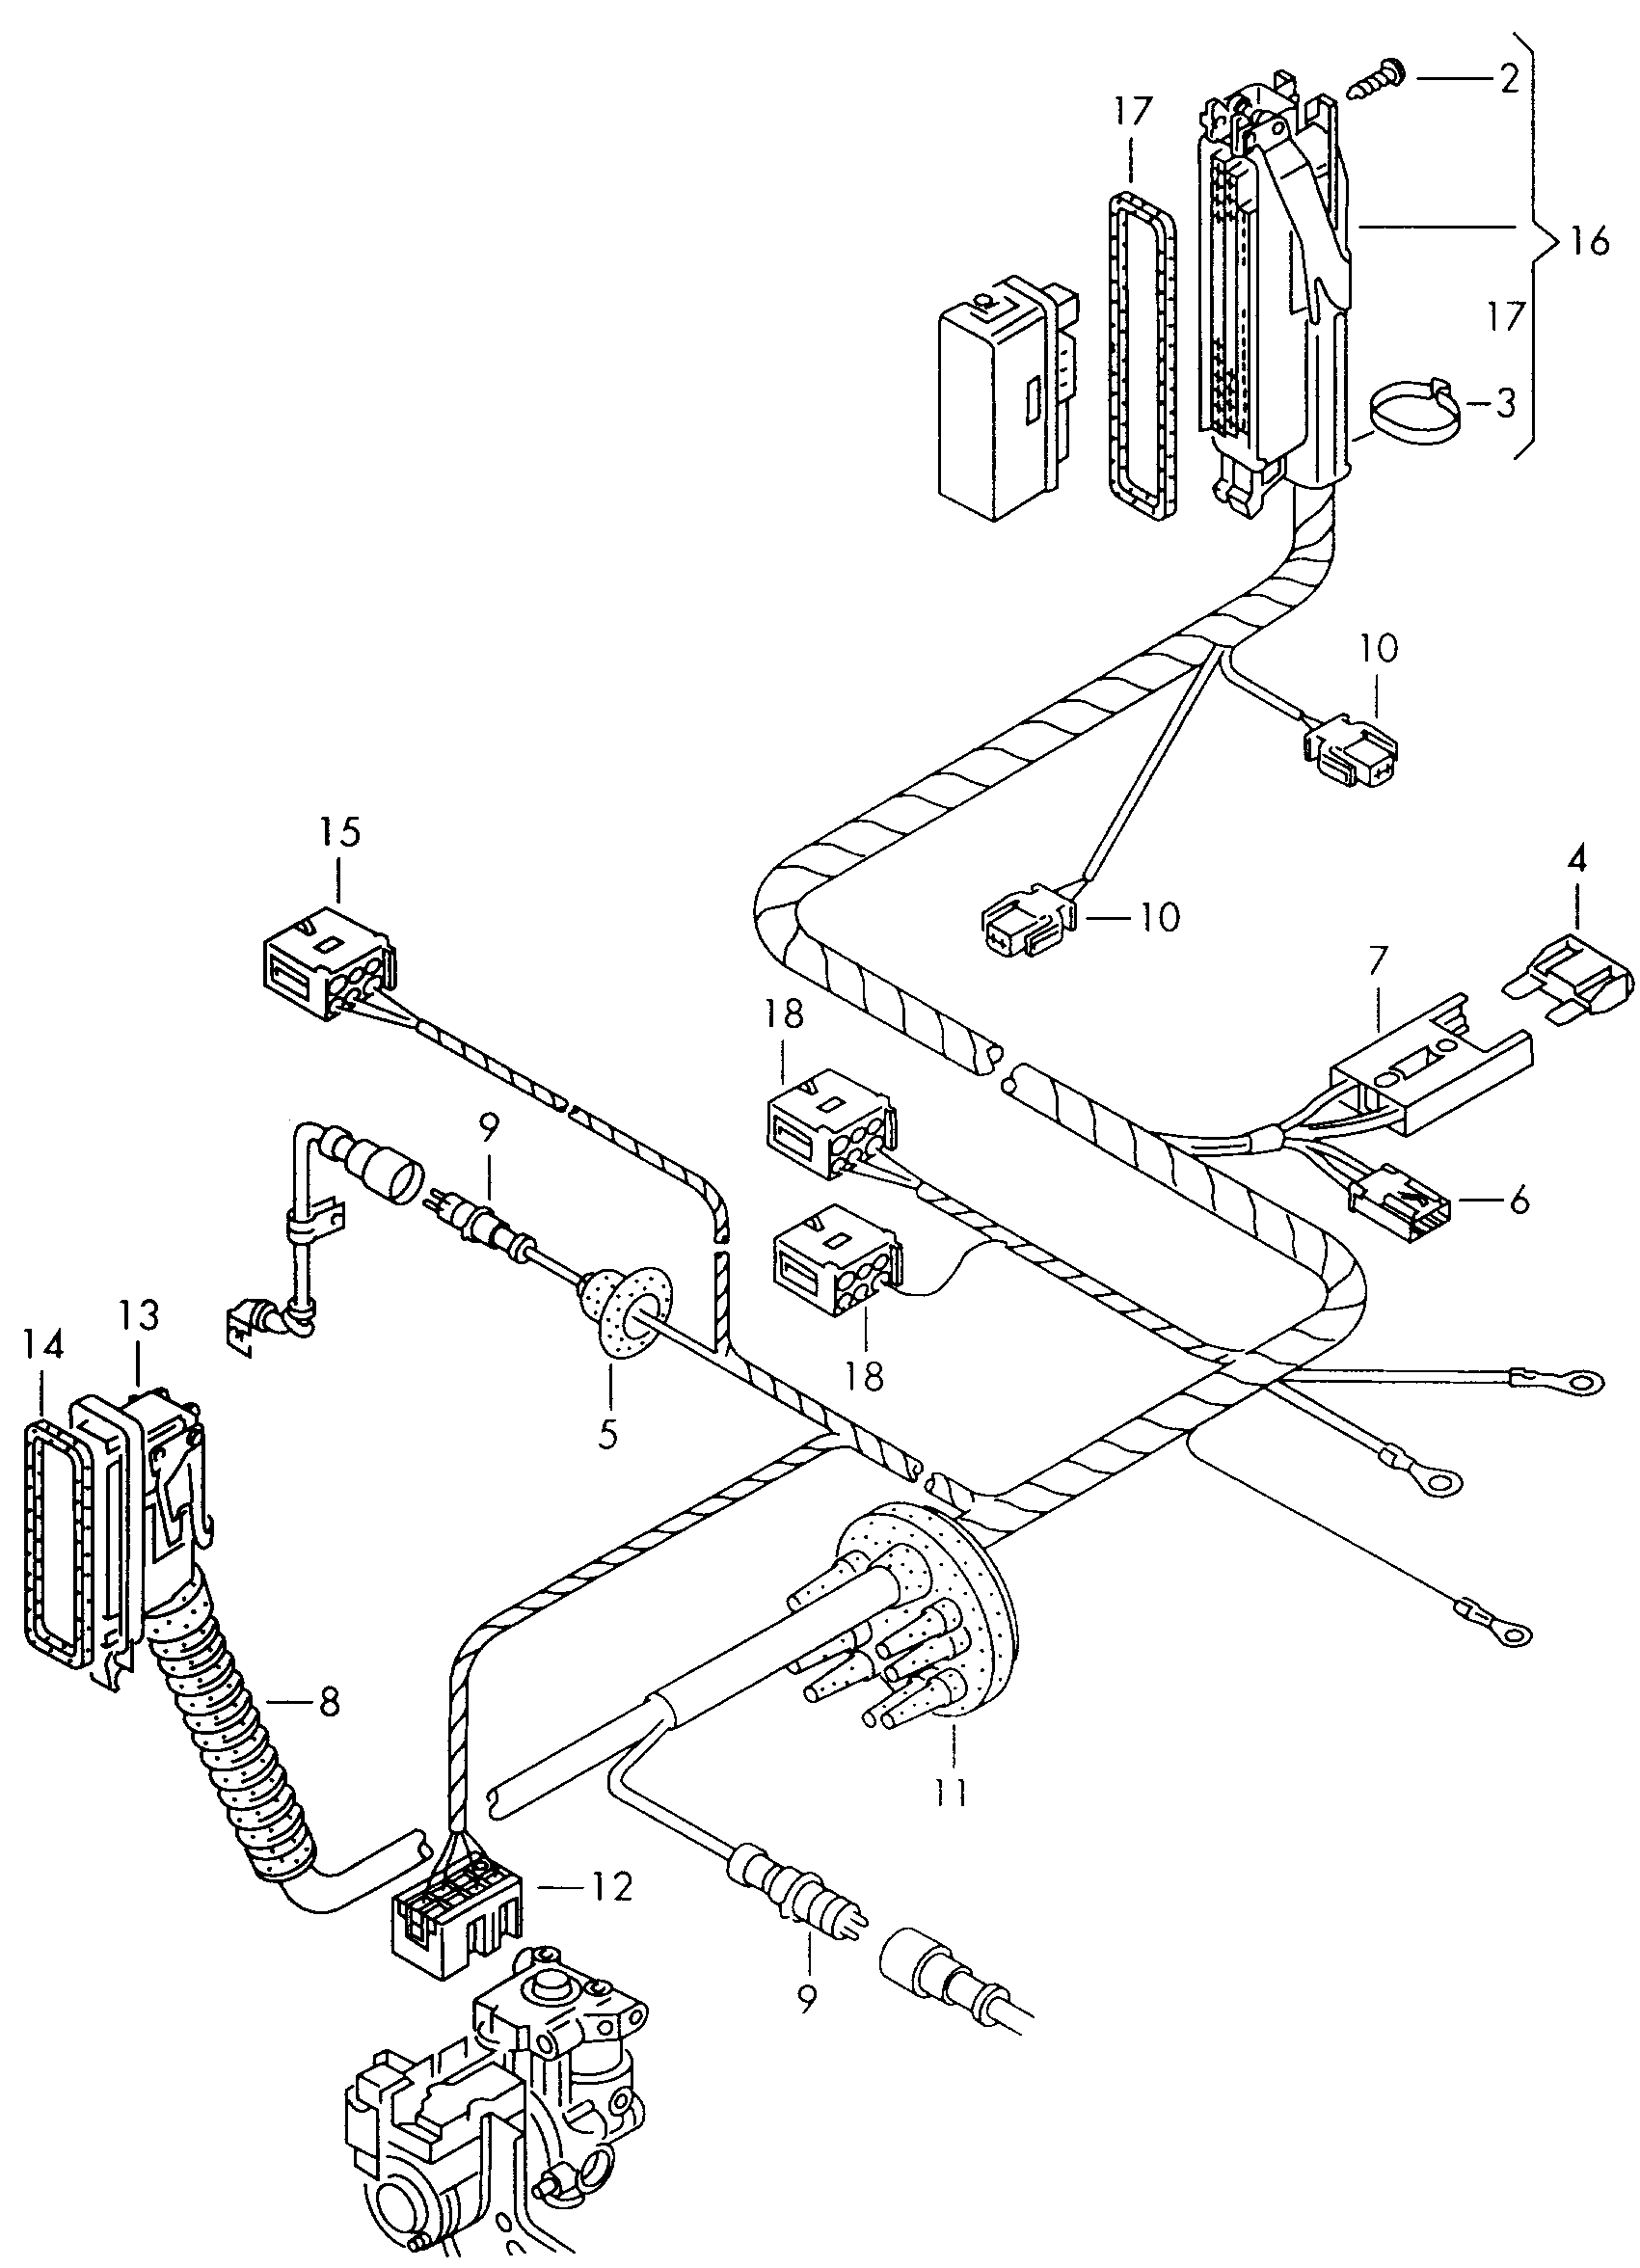 Wiring Diagram Audi A4 1997